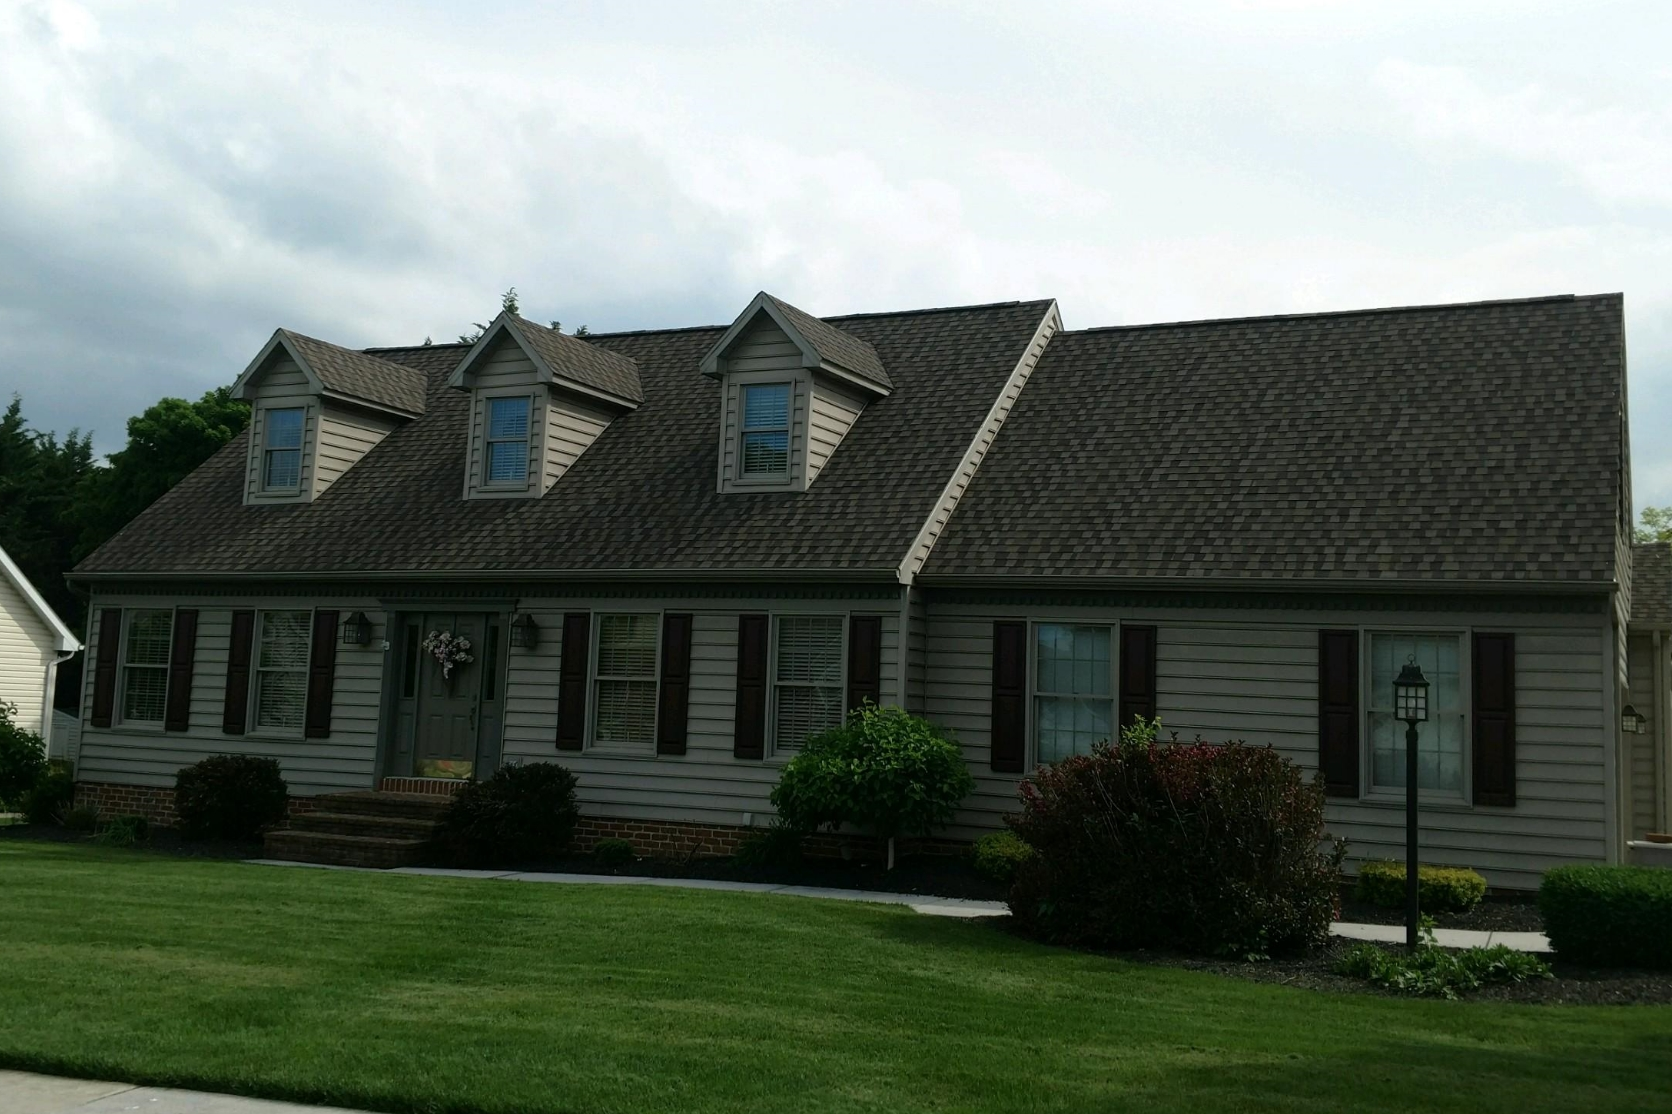 Bosse Home Improvements Hanover Pa 17331 Amp New Oxford